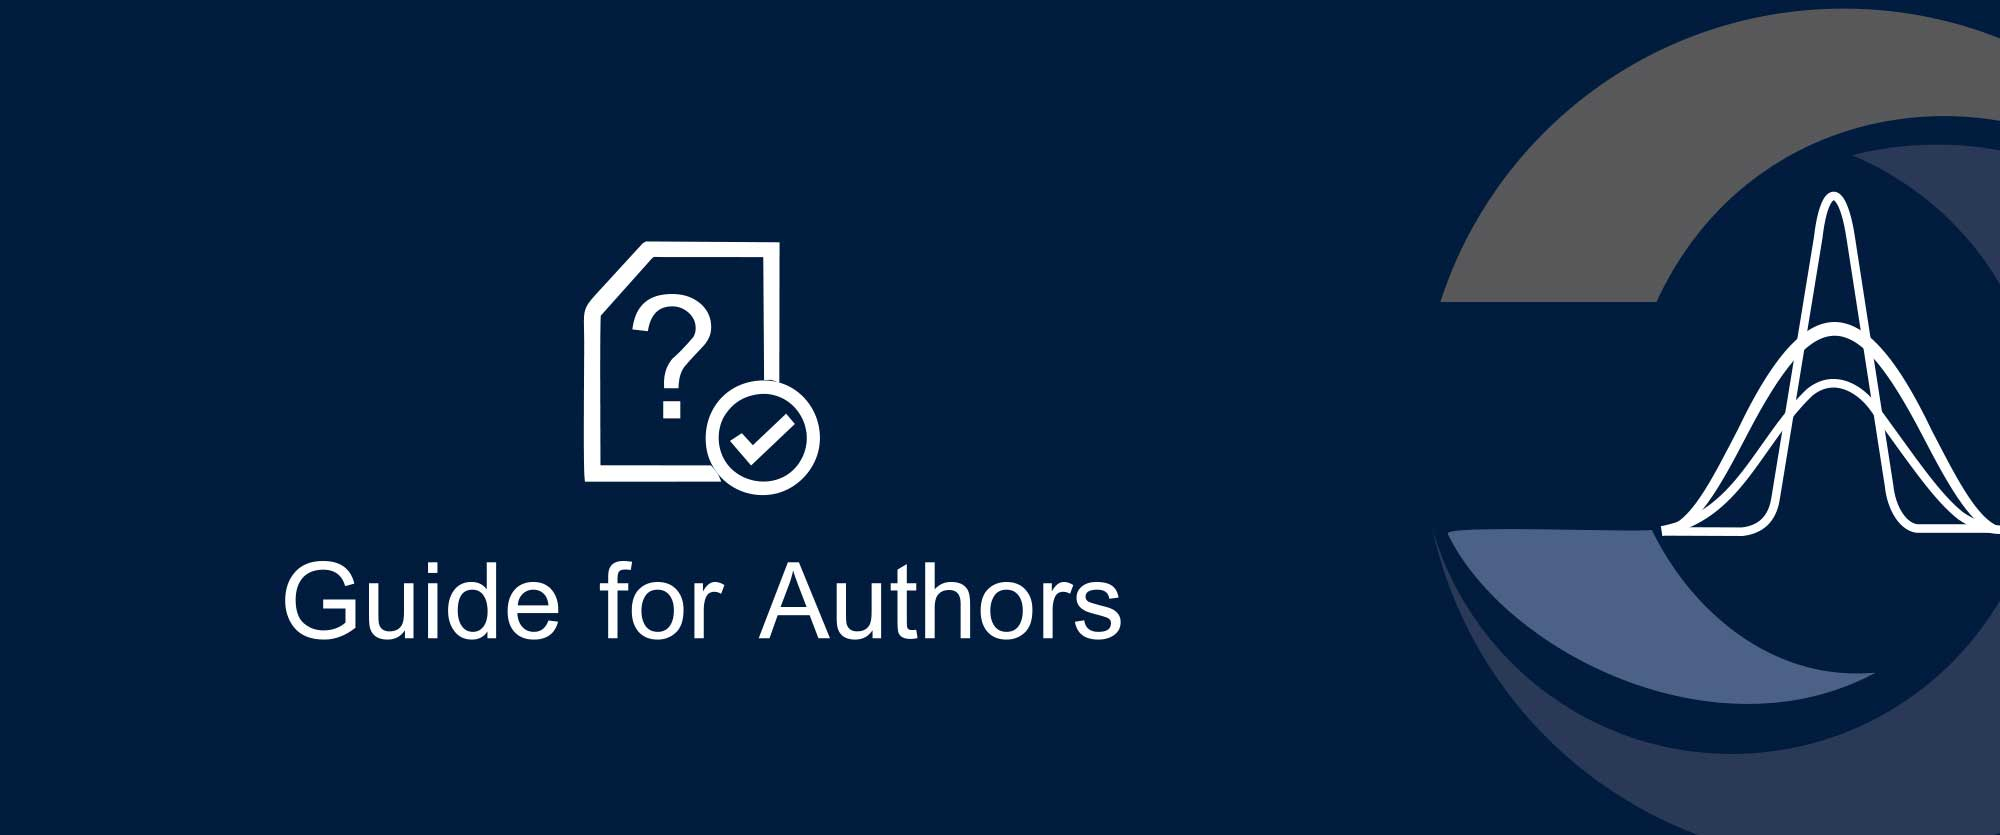 Guide for Authors